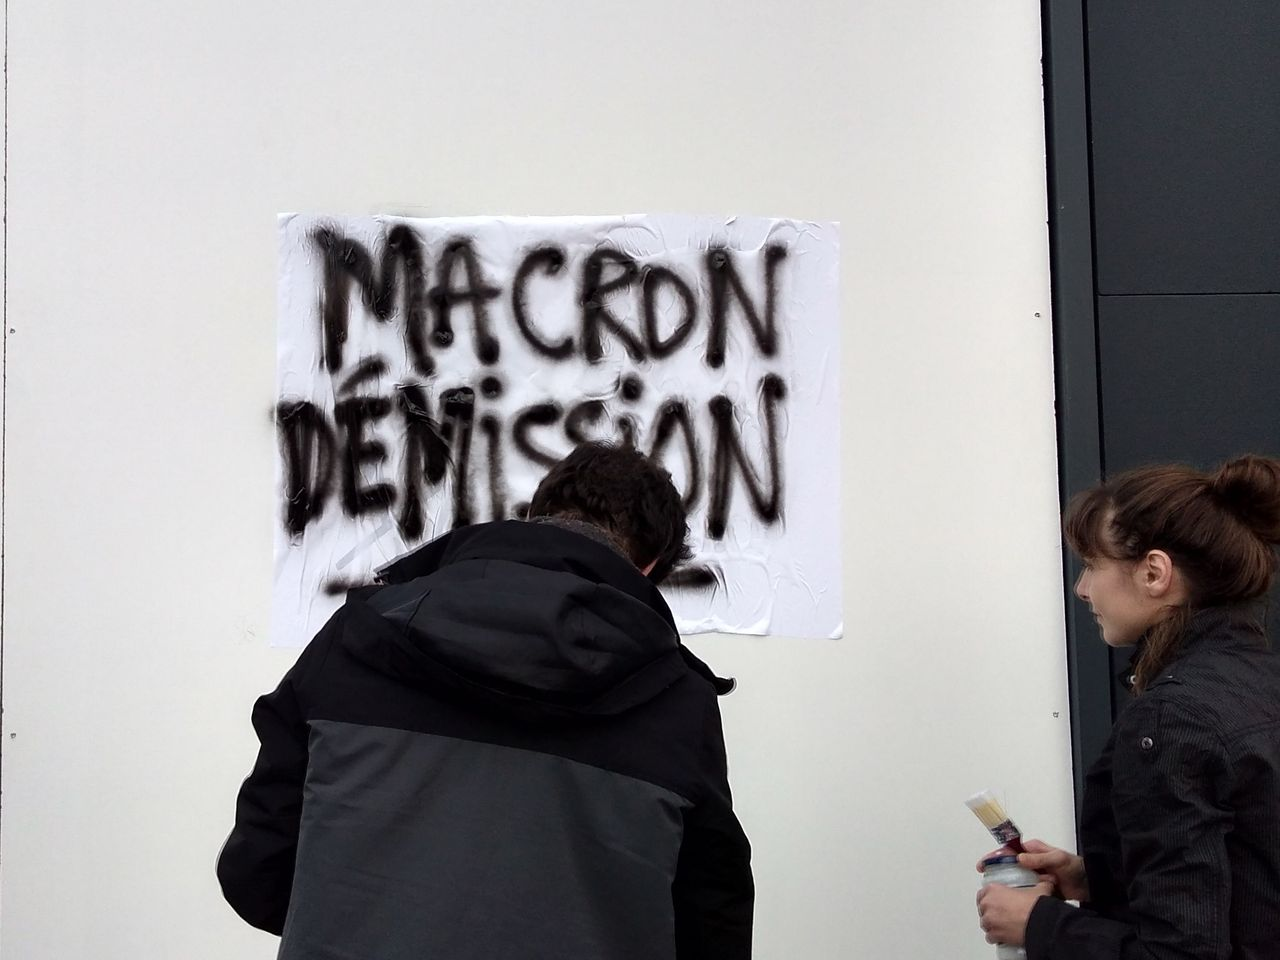 French protesters putting up a poster demanding 'Macron resign'